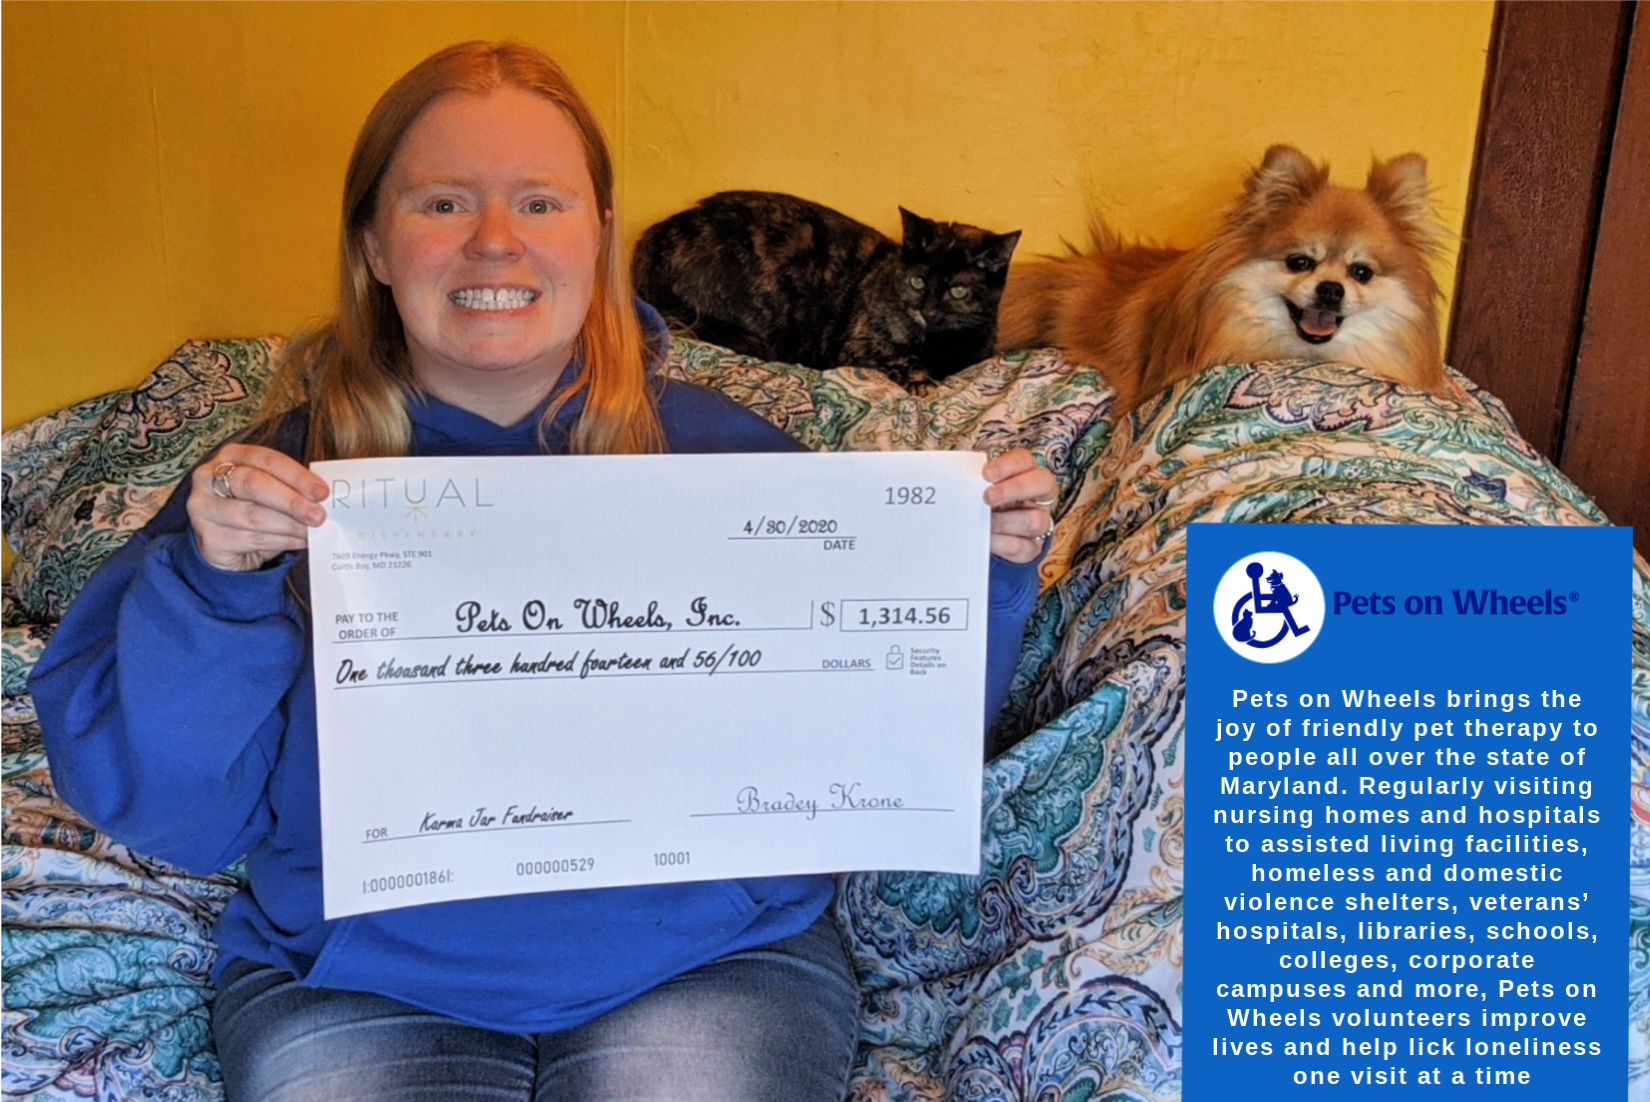 Ritual Pets on Wheels donation lady smiling with check with dog and cat in background